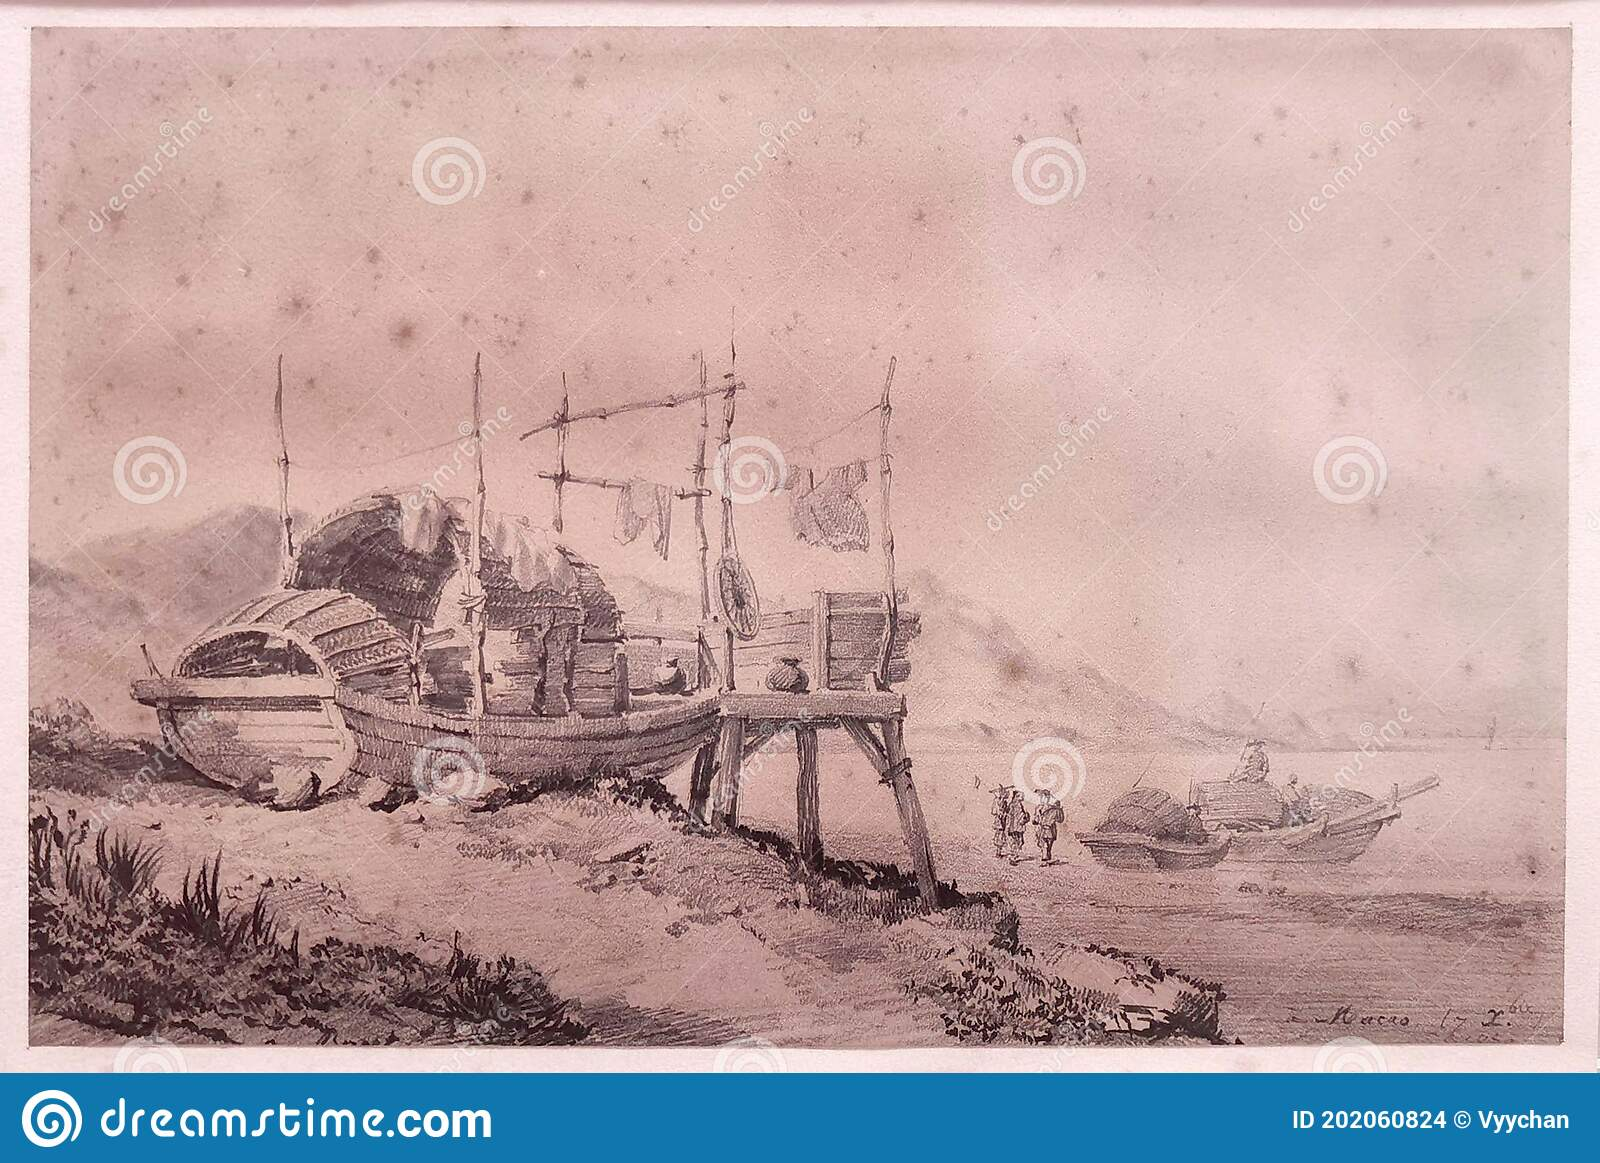 Pencil Sketch Scenery Photos Free Royalty Free Stock Photos From Dreamstime See more ideas about charcoal drawing, drawings, scenery. dreamstime com